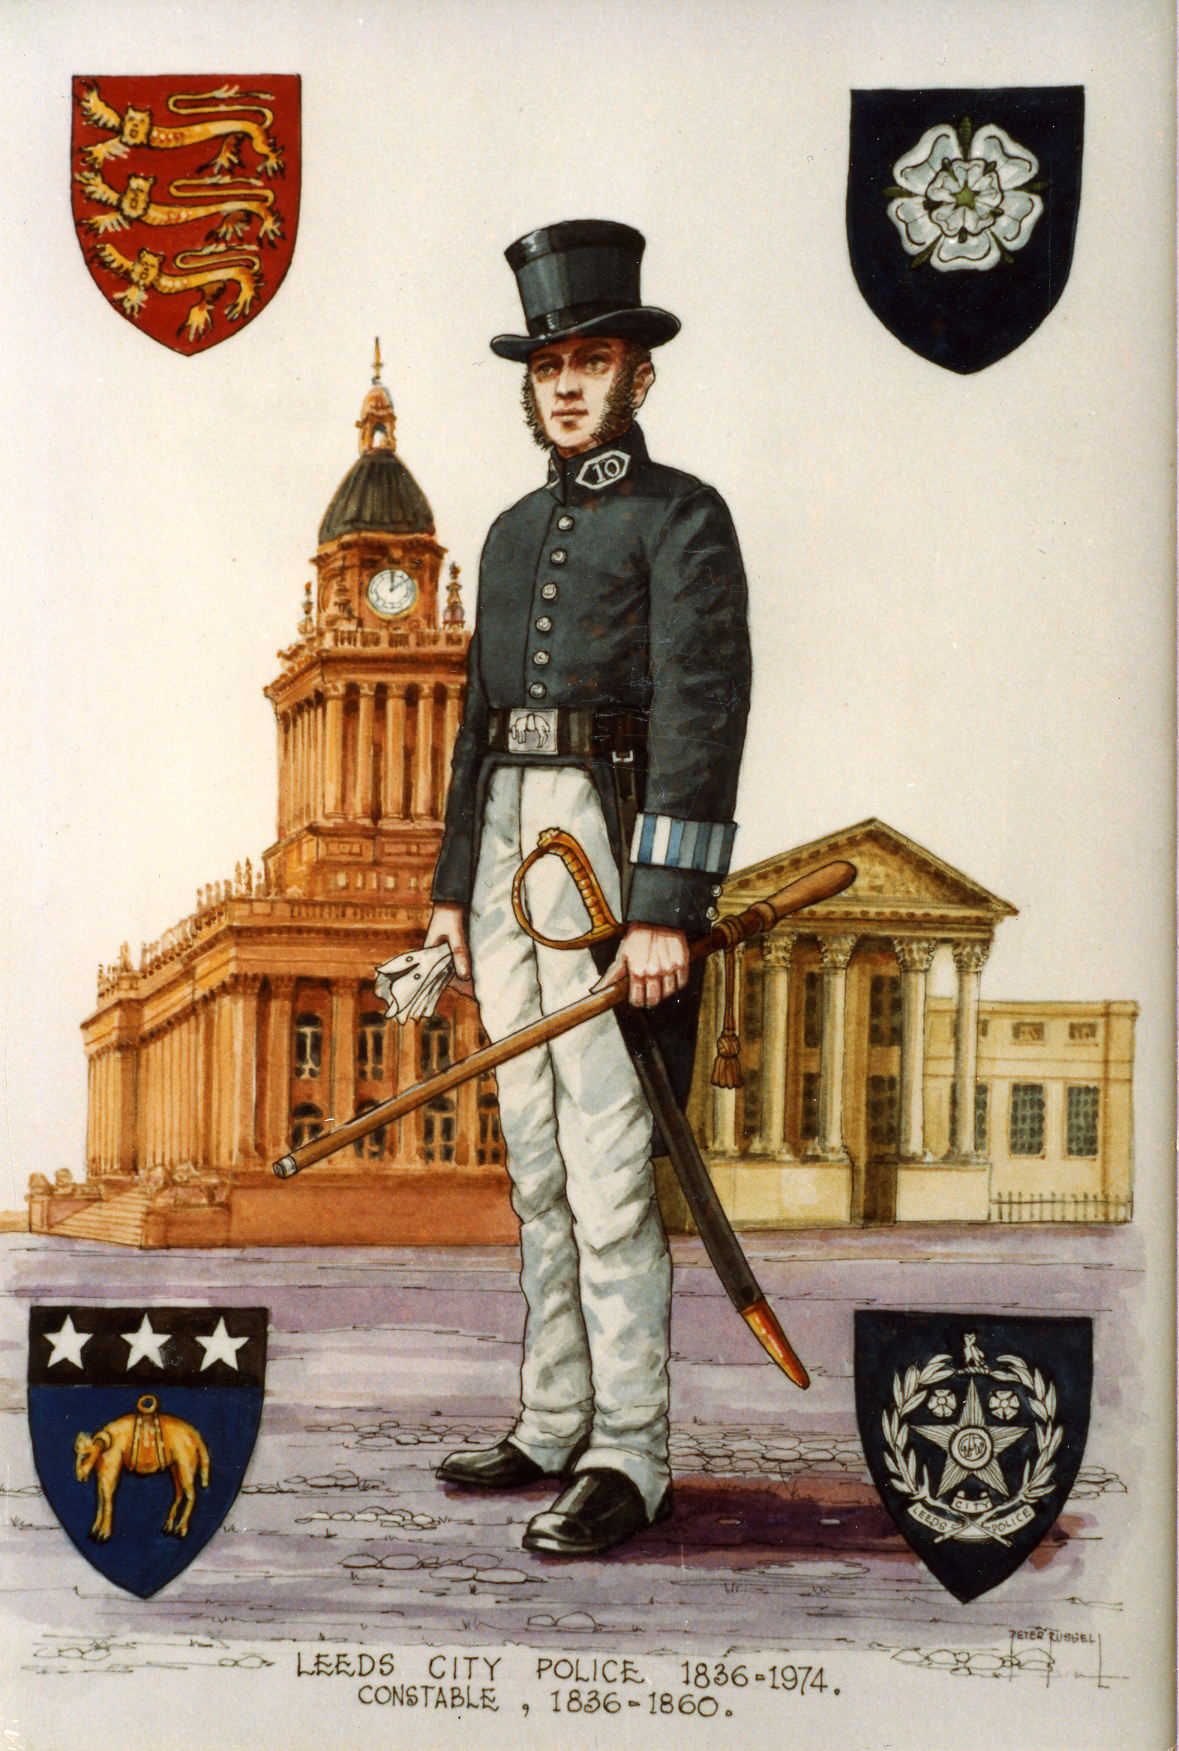 The police constable wears a black top hat and tailcoat, with white  trousers.  He is armed with a sword and a long wooden truncheon.